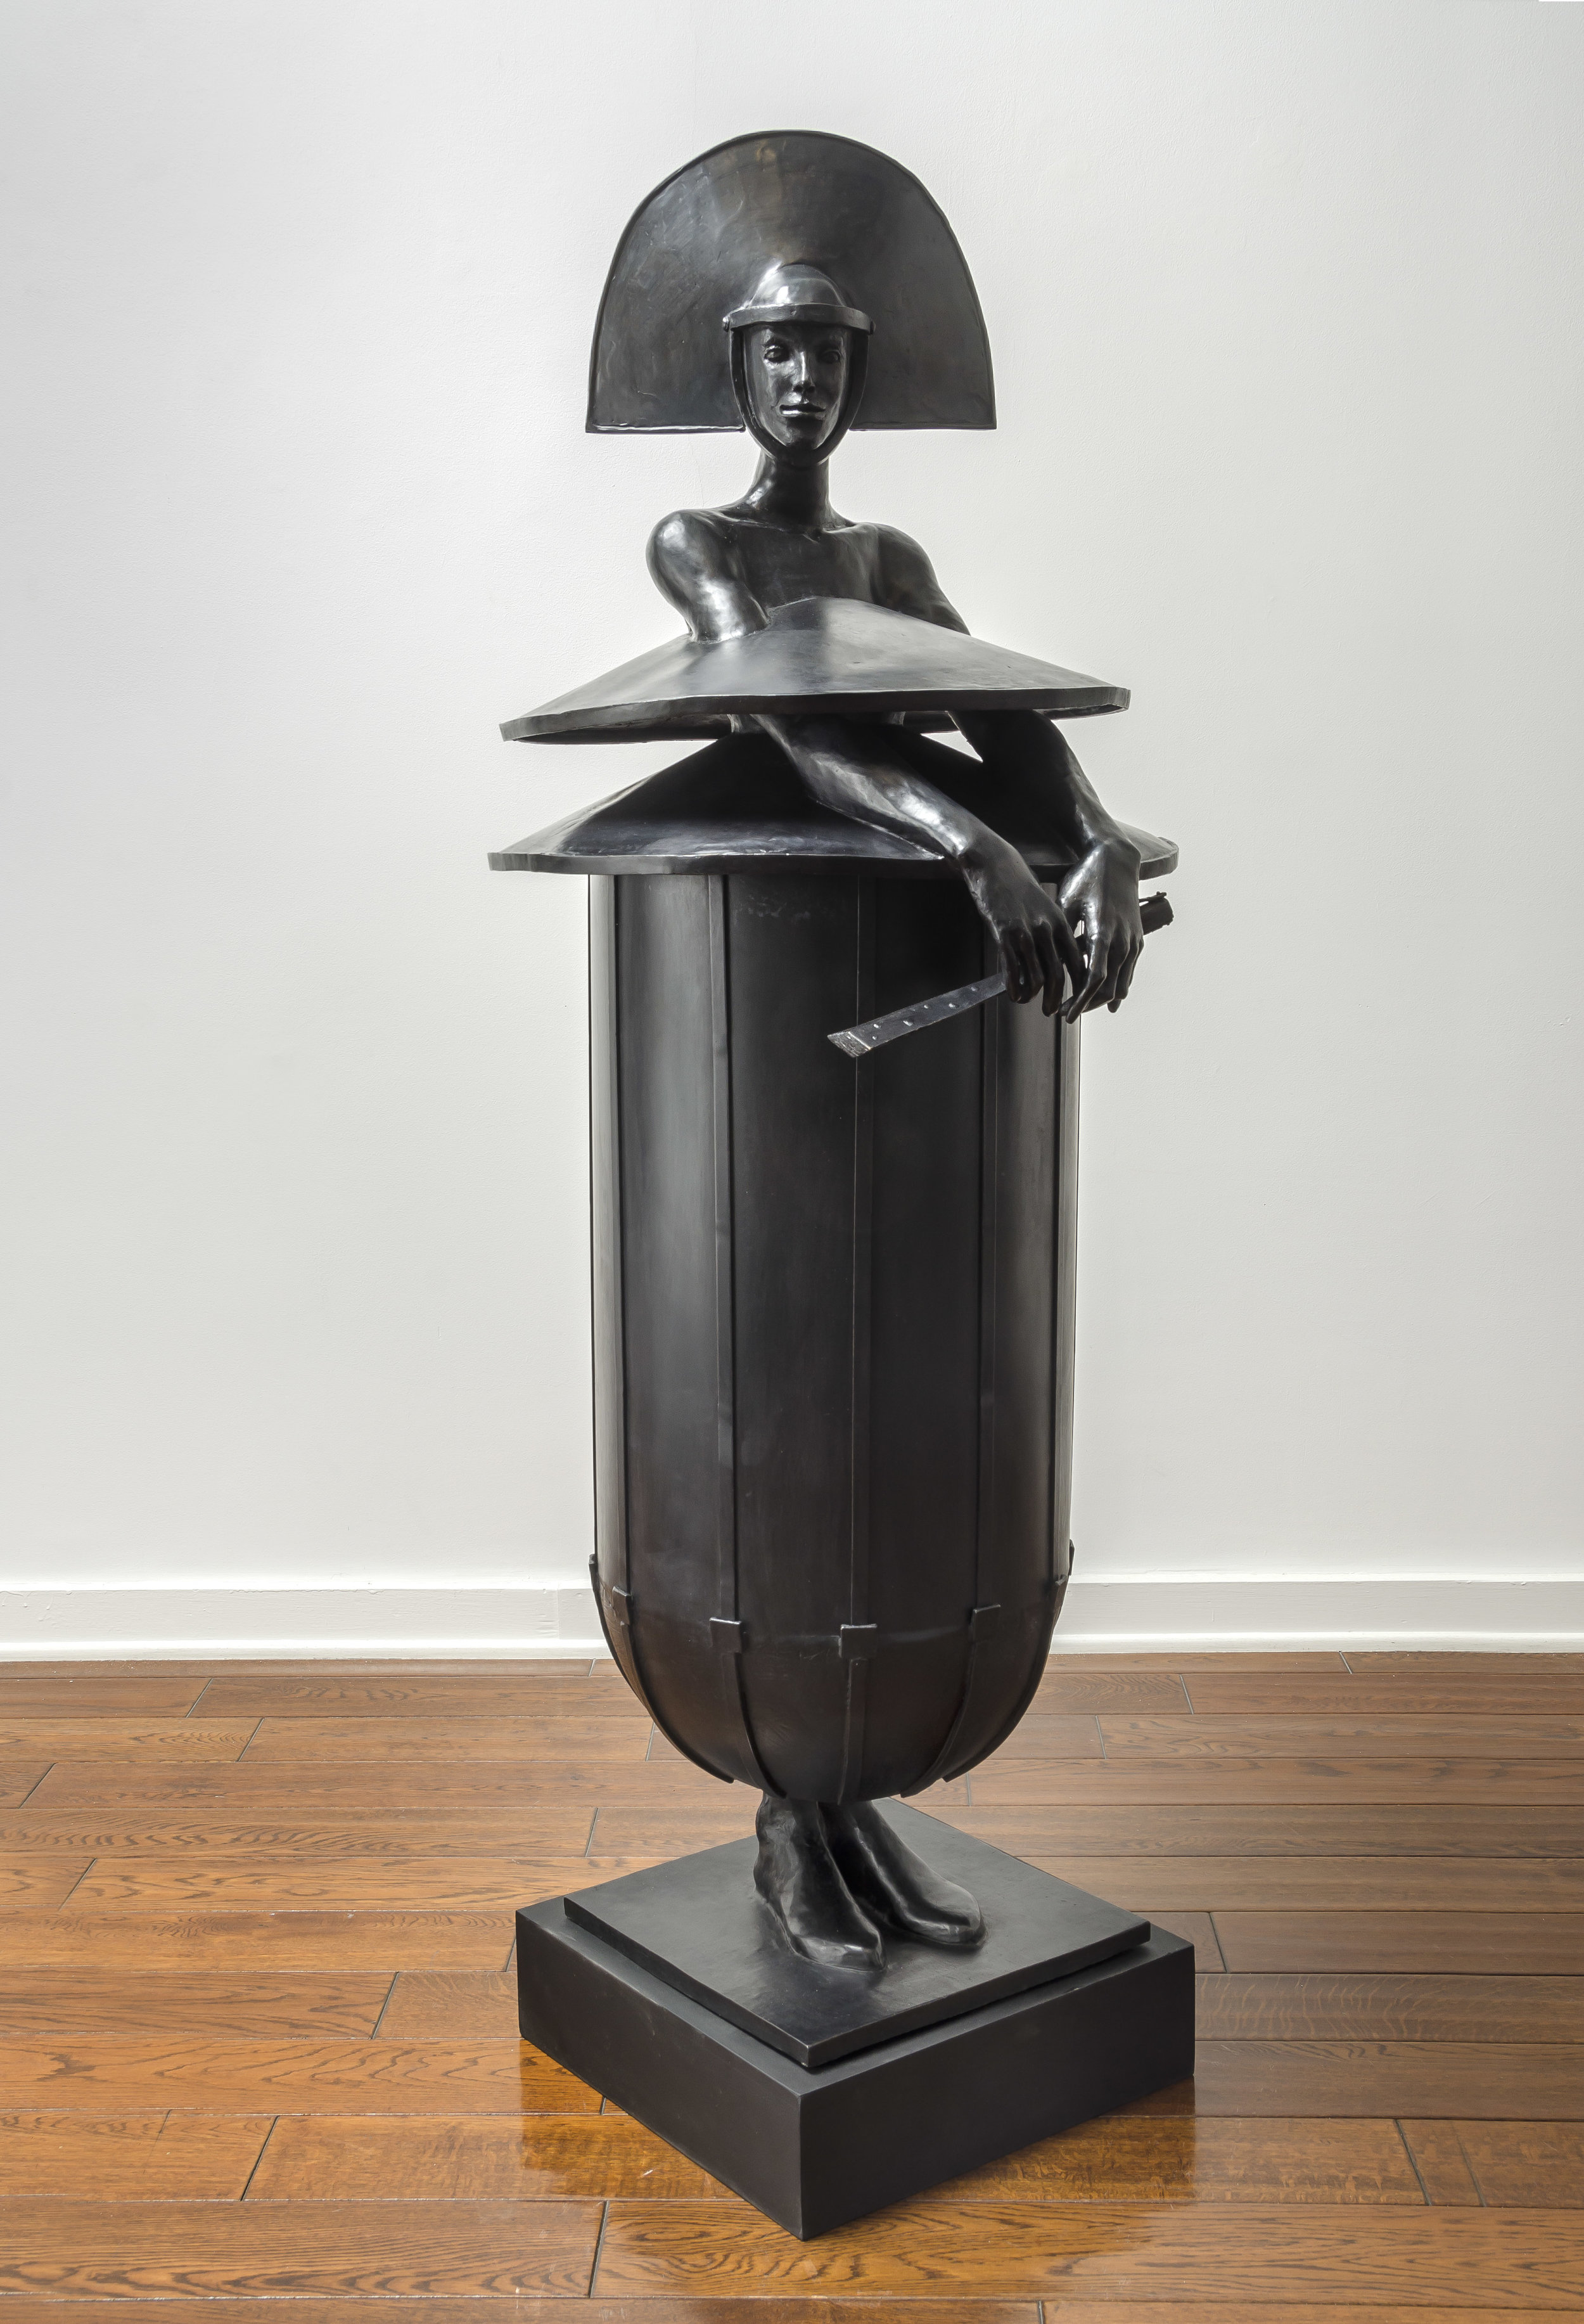 El Abanico , 2019 bronze 61 x 22 x 24 inches; 154.9 x 55.9 x 61 centimeters